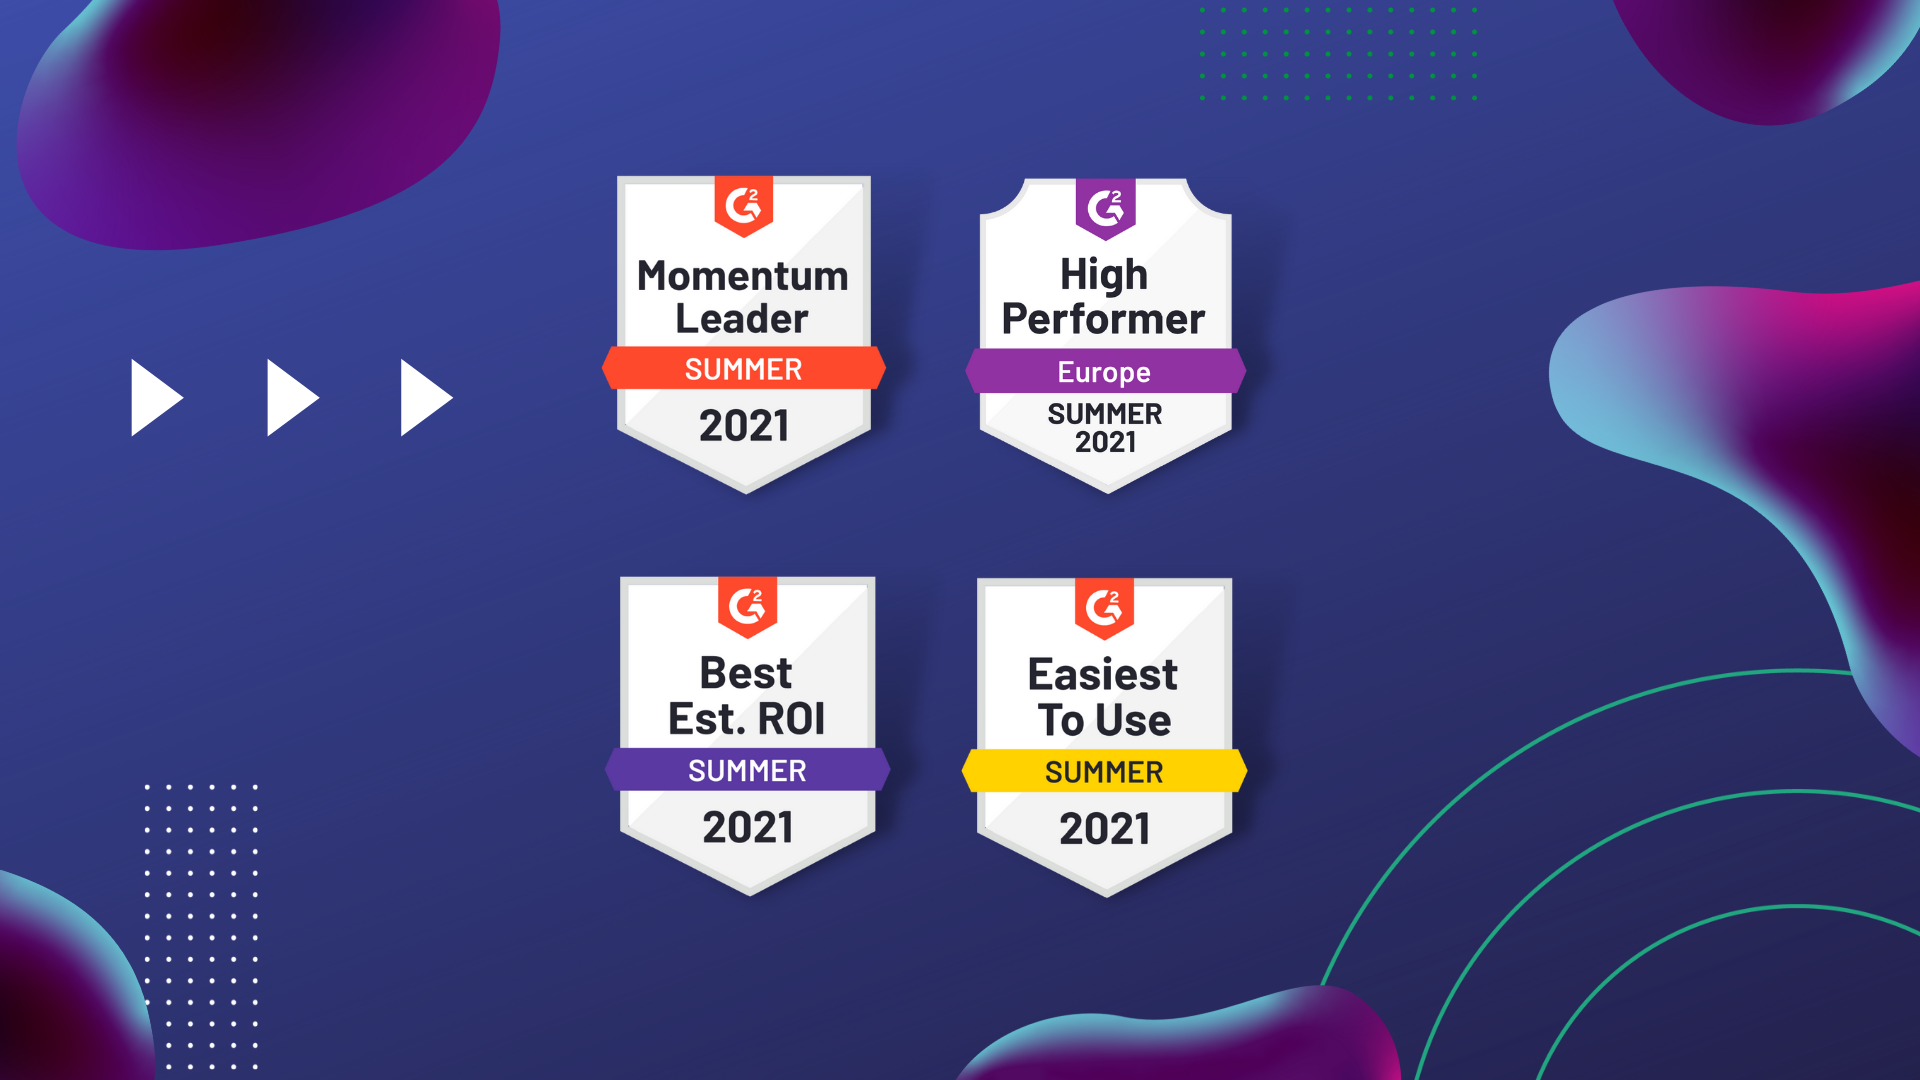 G2 Has Named ElectroNeek a Momentum Leader for the 3rd Quarter in a Row